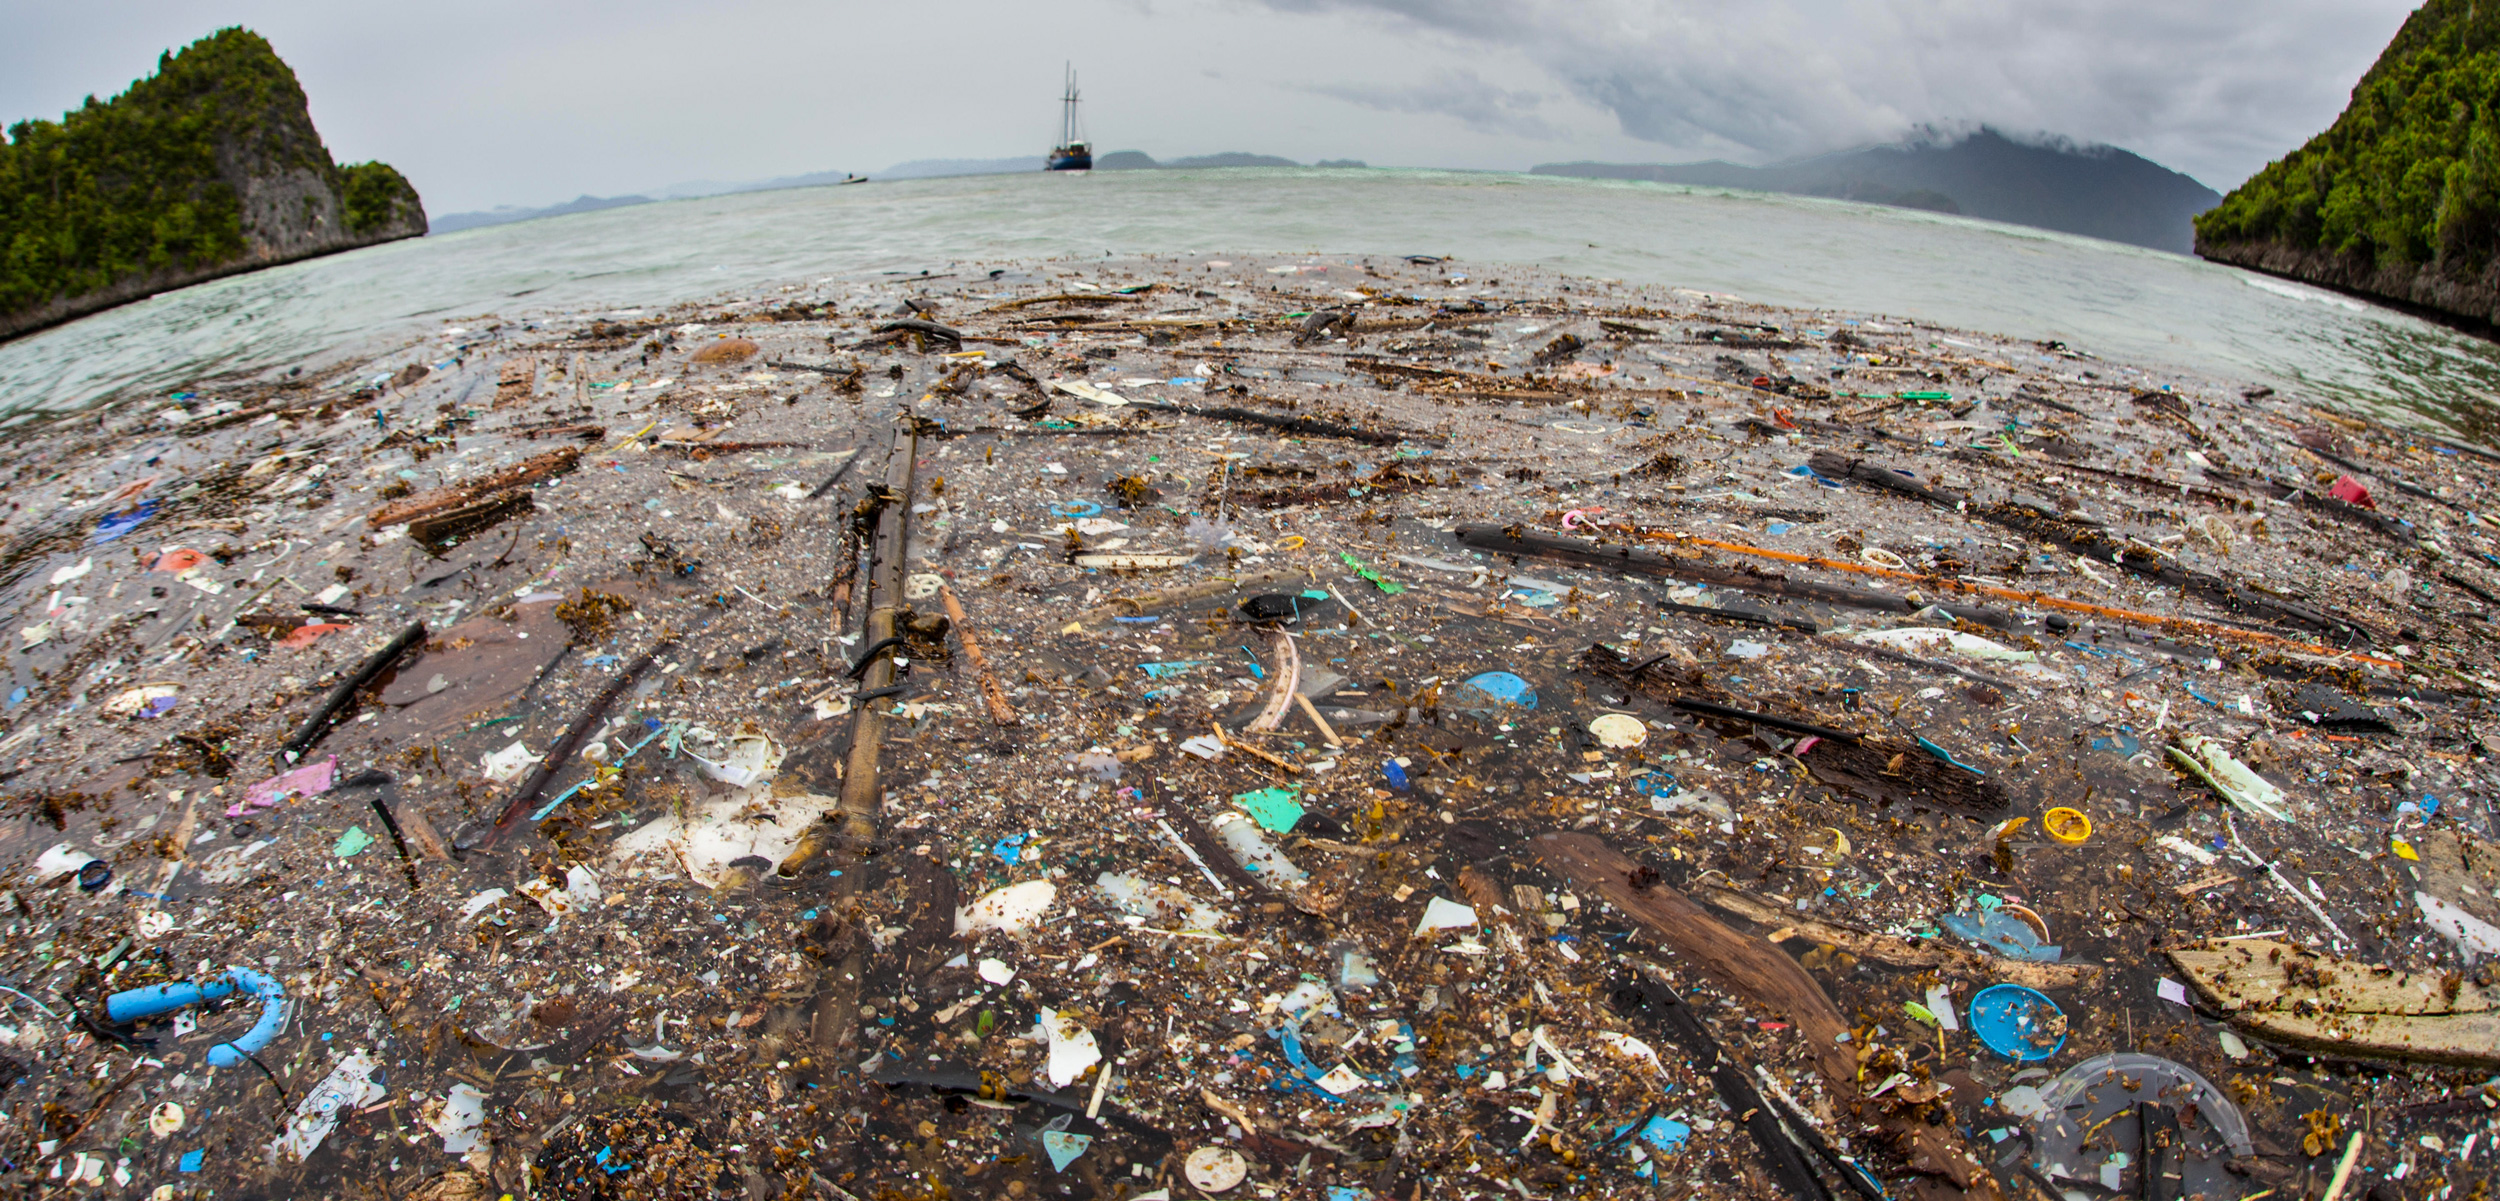 Discarded plastic washes up on a remote island in Raja Ampat, Indonesia